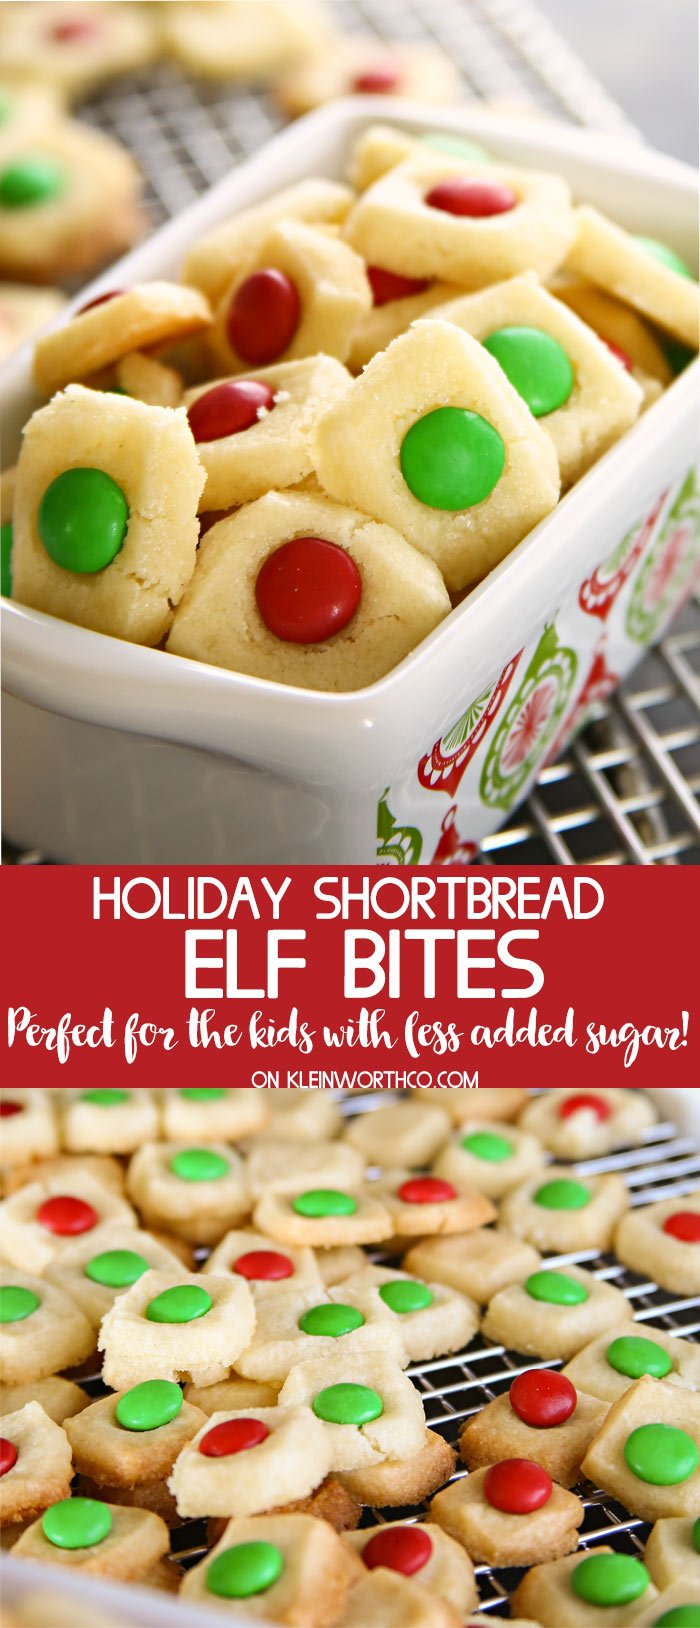 Holiday Shortbread Elf Bites Kleinworth Co